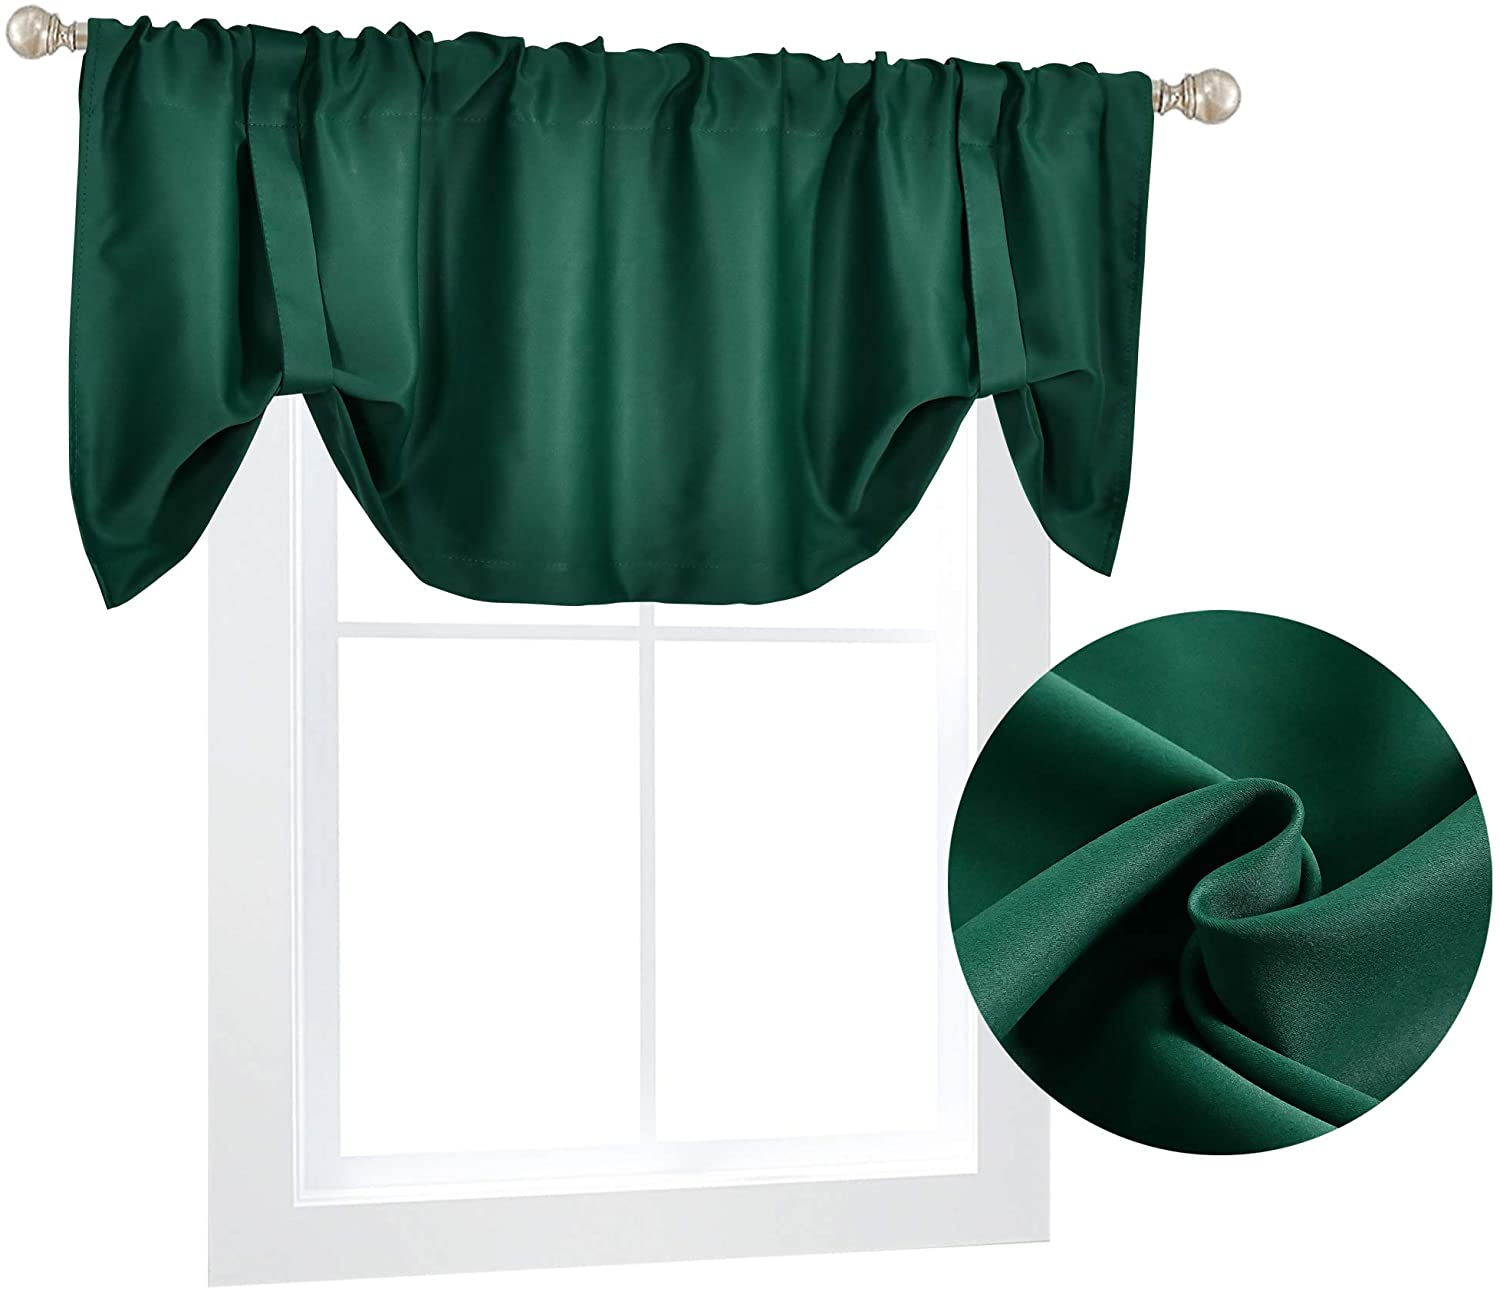 DECOVSUN Green Blackout Tie Up Shade Curtain Valance 18 Inches Long Room Darkening Adjustable Valance Window Treatments Tie-up Valances Curtains for Bedroom Kids Room 52X18 Inch 1Panel